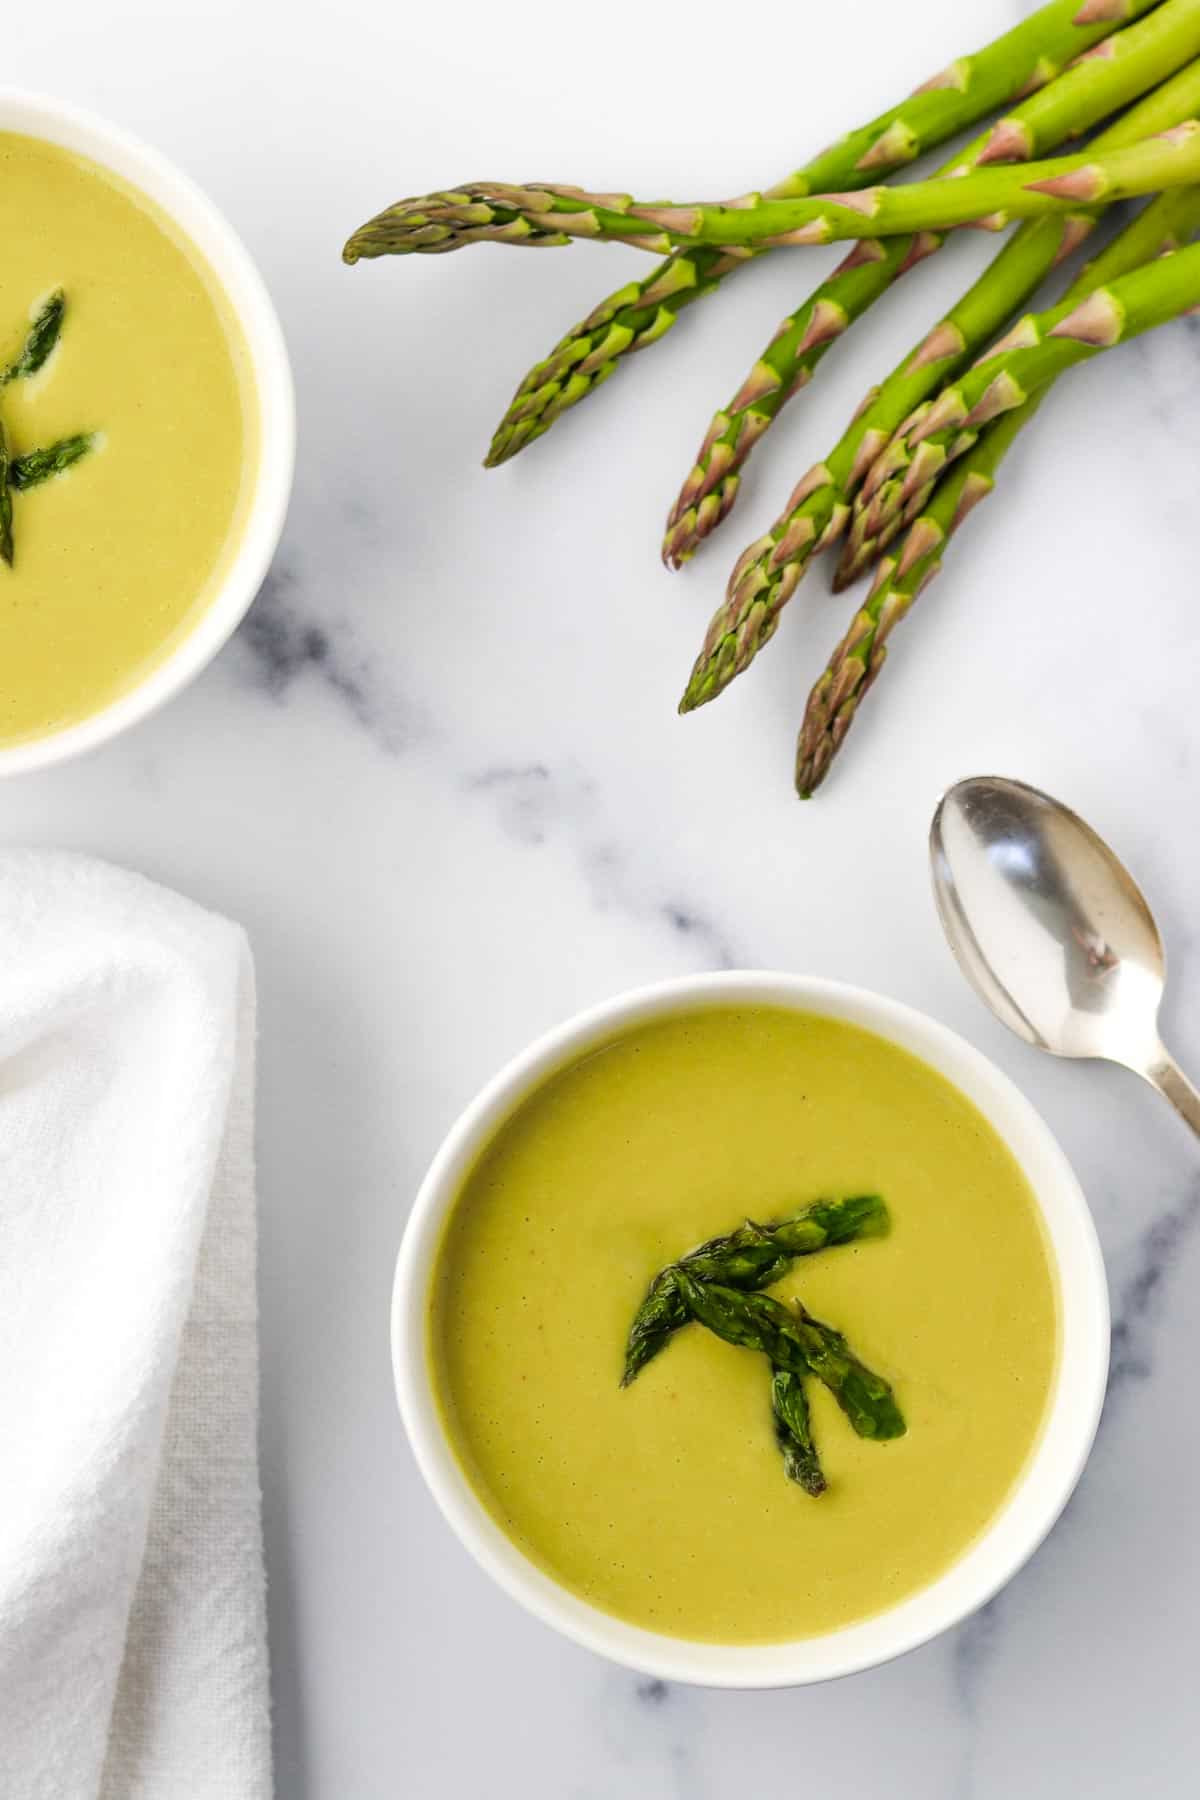 Two bowls of Creamy Asparagus, Leek and Pea Soup next to asparagus spears and a spoon.